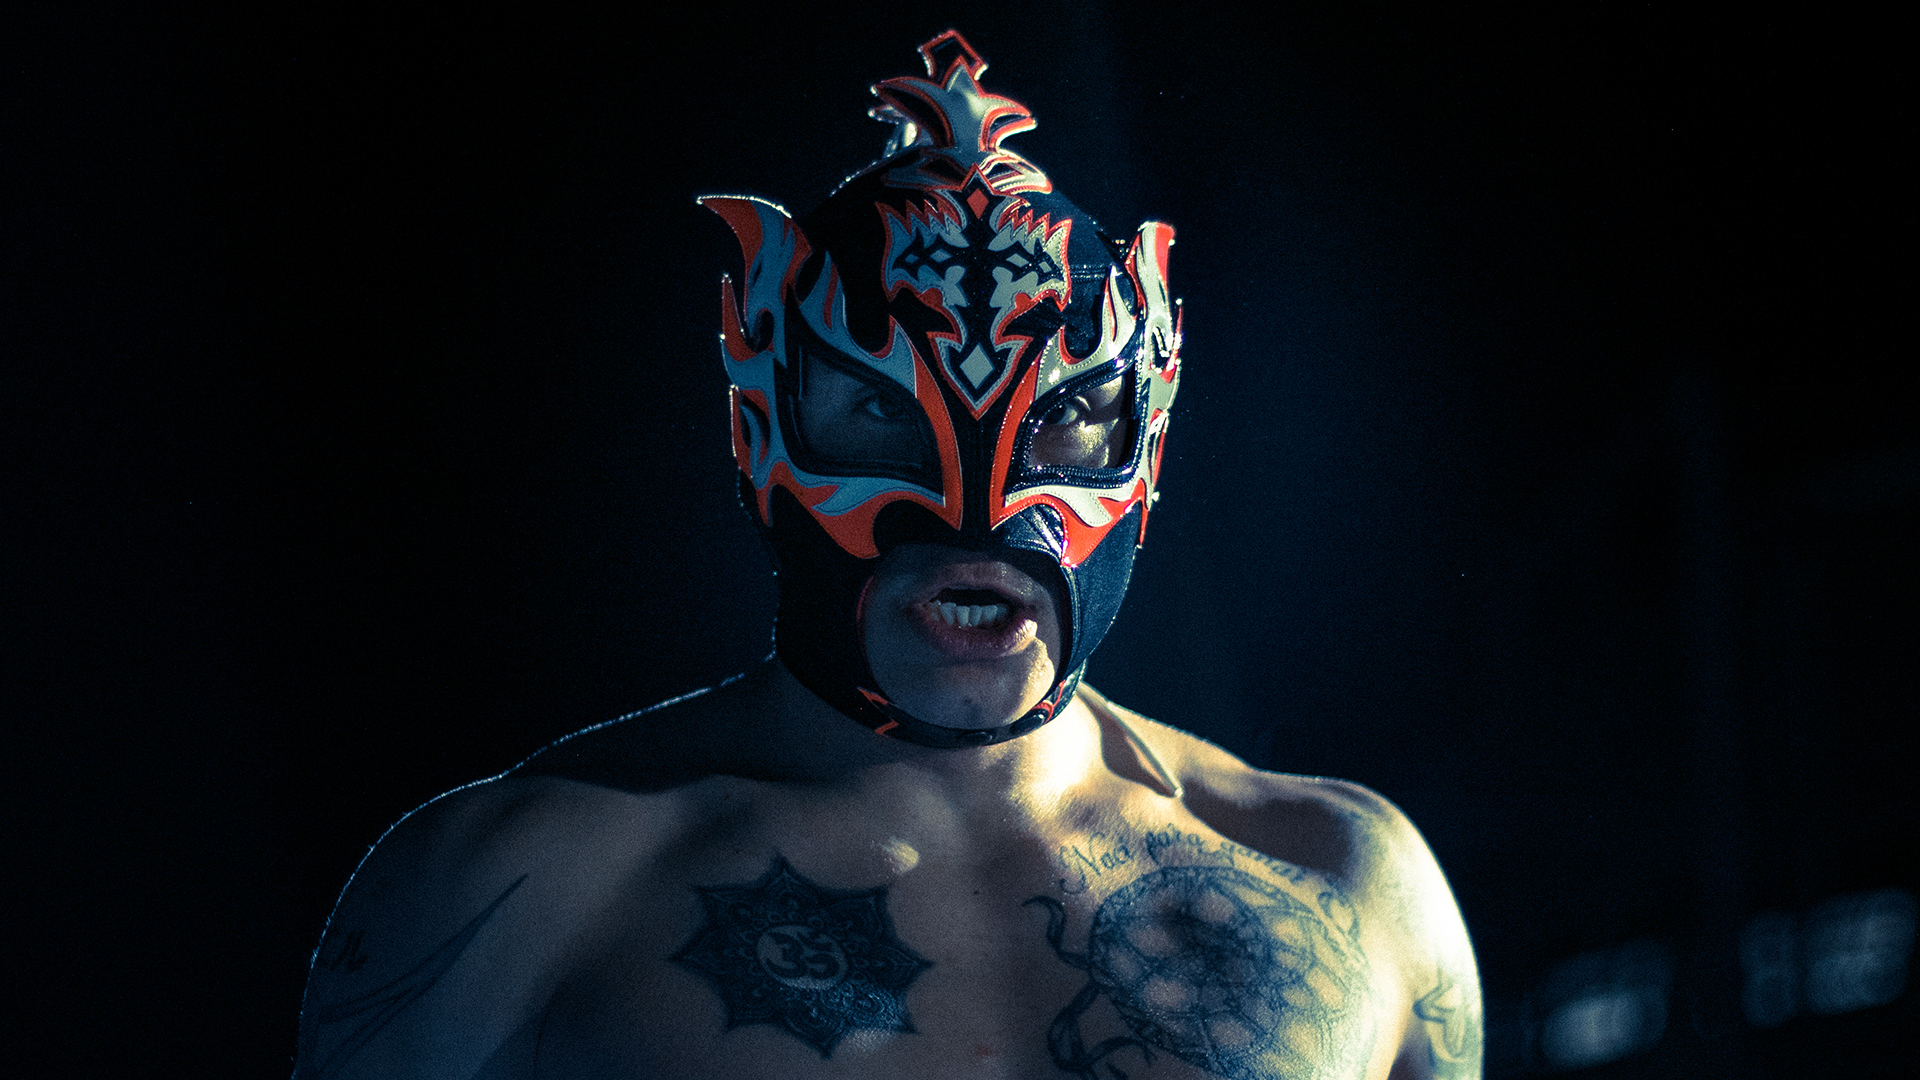 The Next Wave of Mexican Luchadores